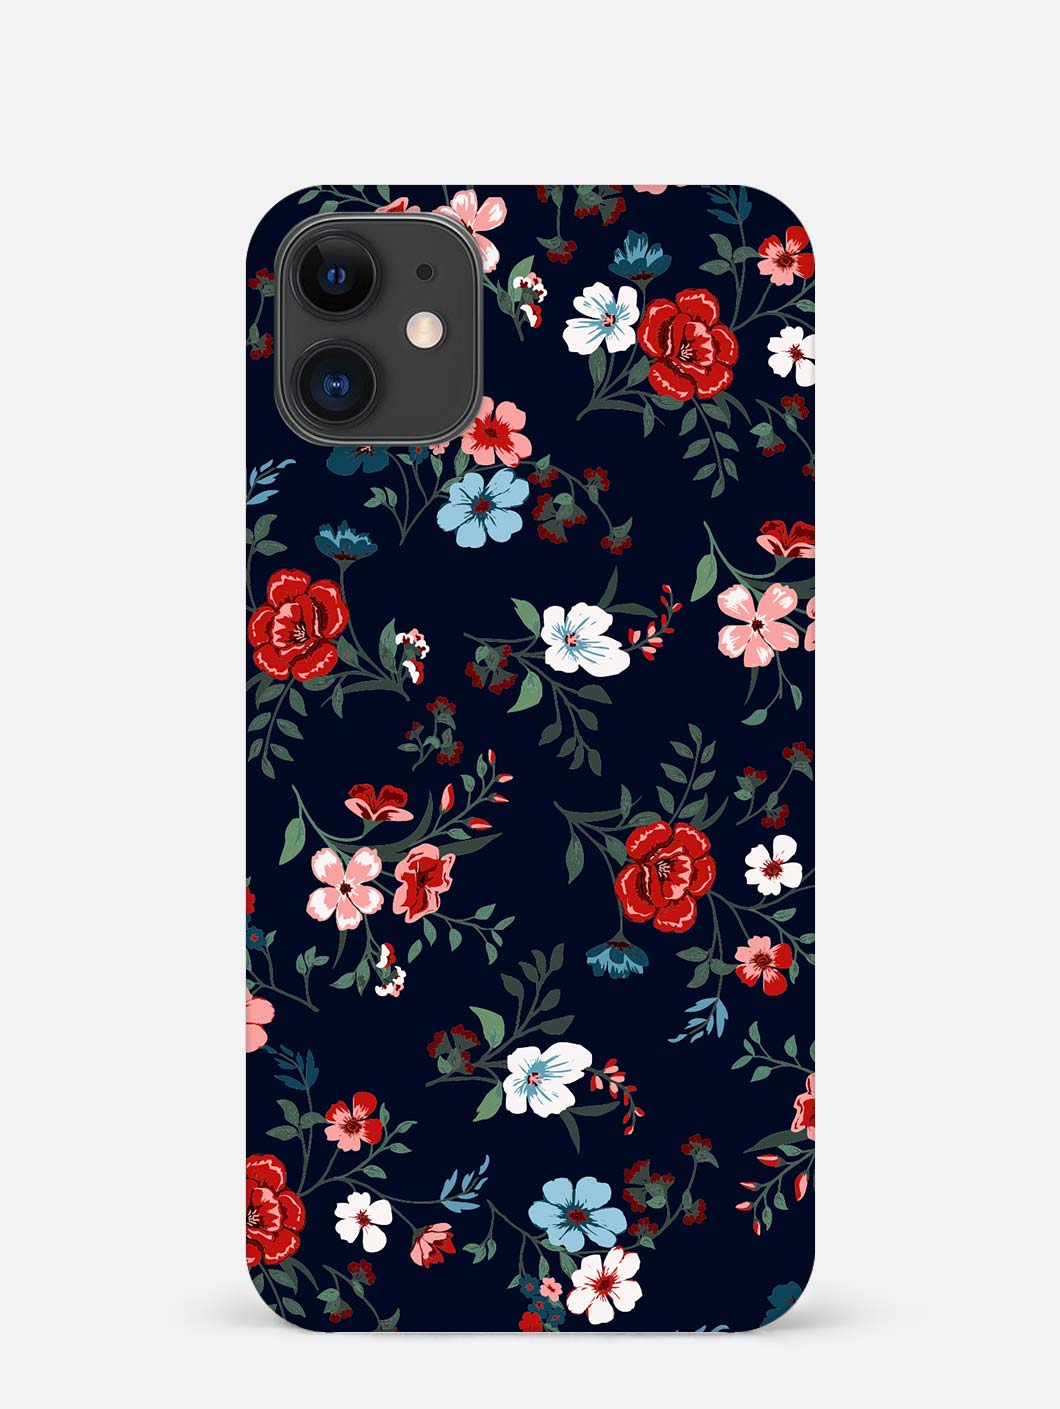 Retro Flower iPhone 12 Mini Mobile Cover